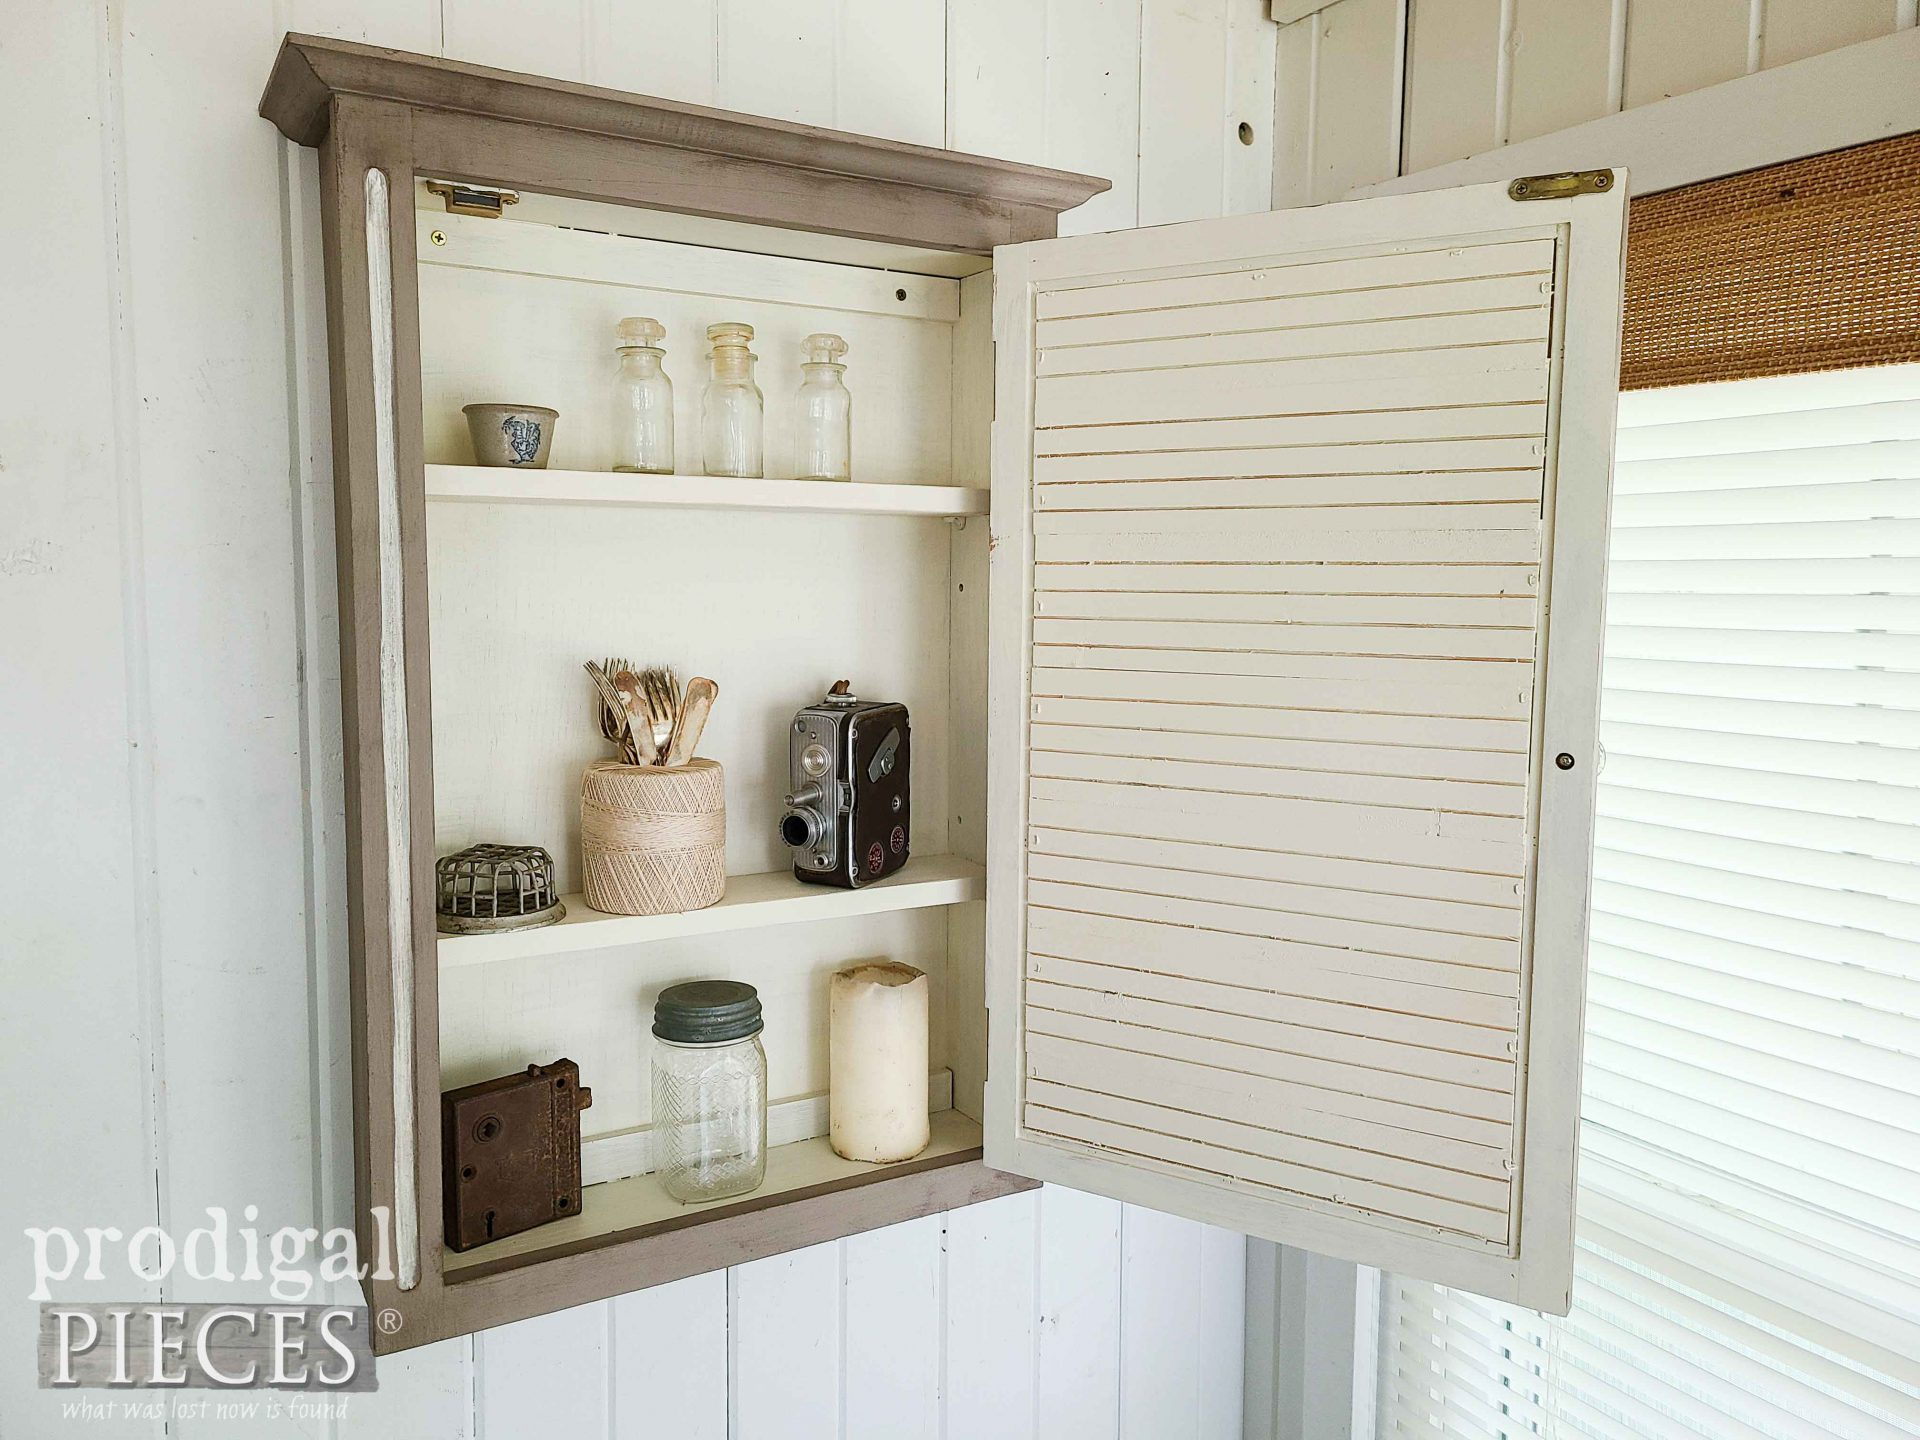 Open Wall Cabinet with Adjustable Shelves from Mirrored Medicine Cabinet by Larissa of Prodigal Pieces | prodigalpieces.com #prodigalpieces #home #cabinet #storage